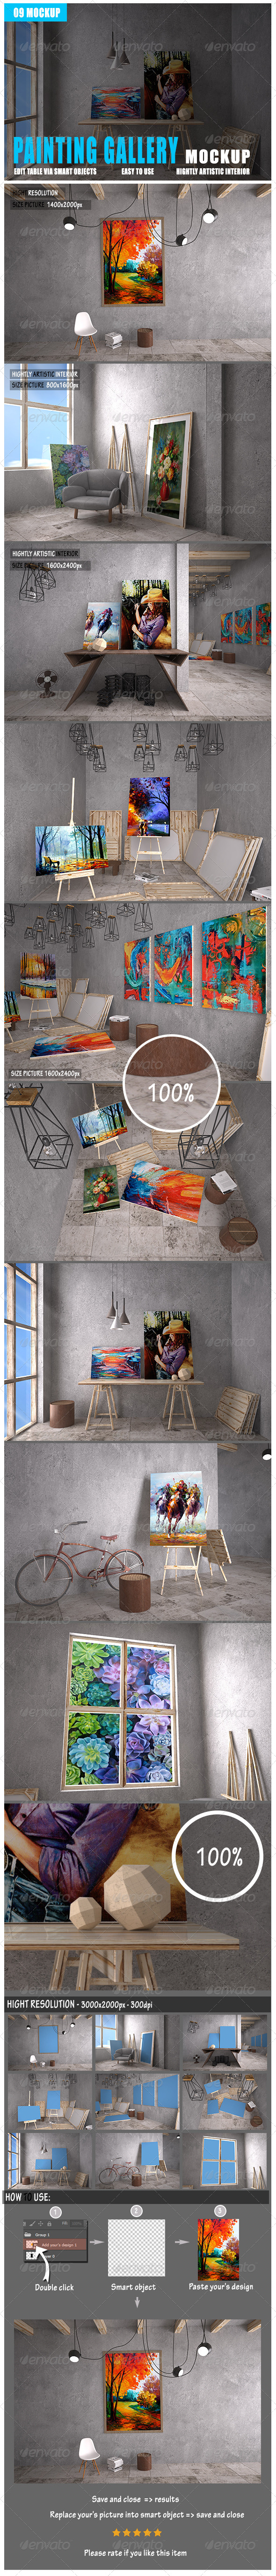 GraphicRiver Painting Gallery Mockup 8170053